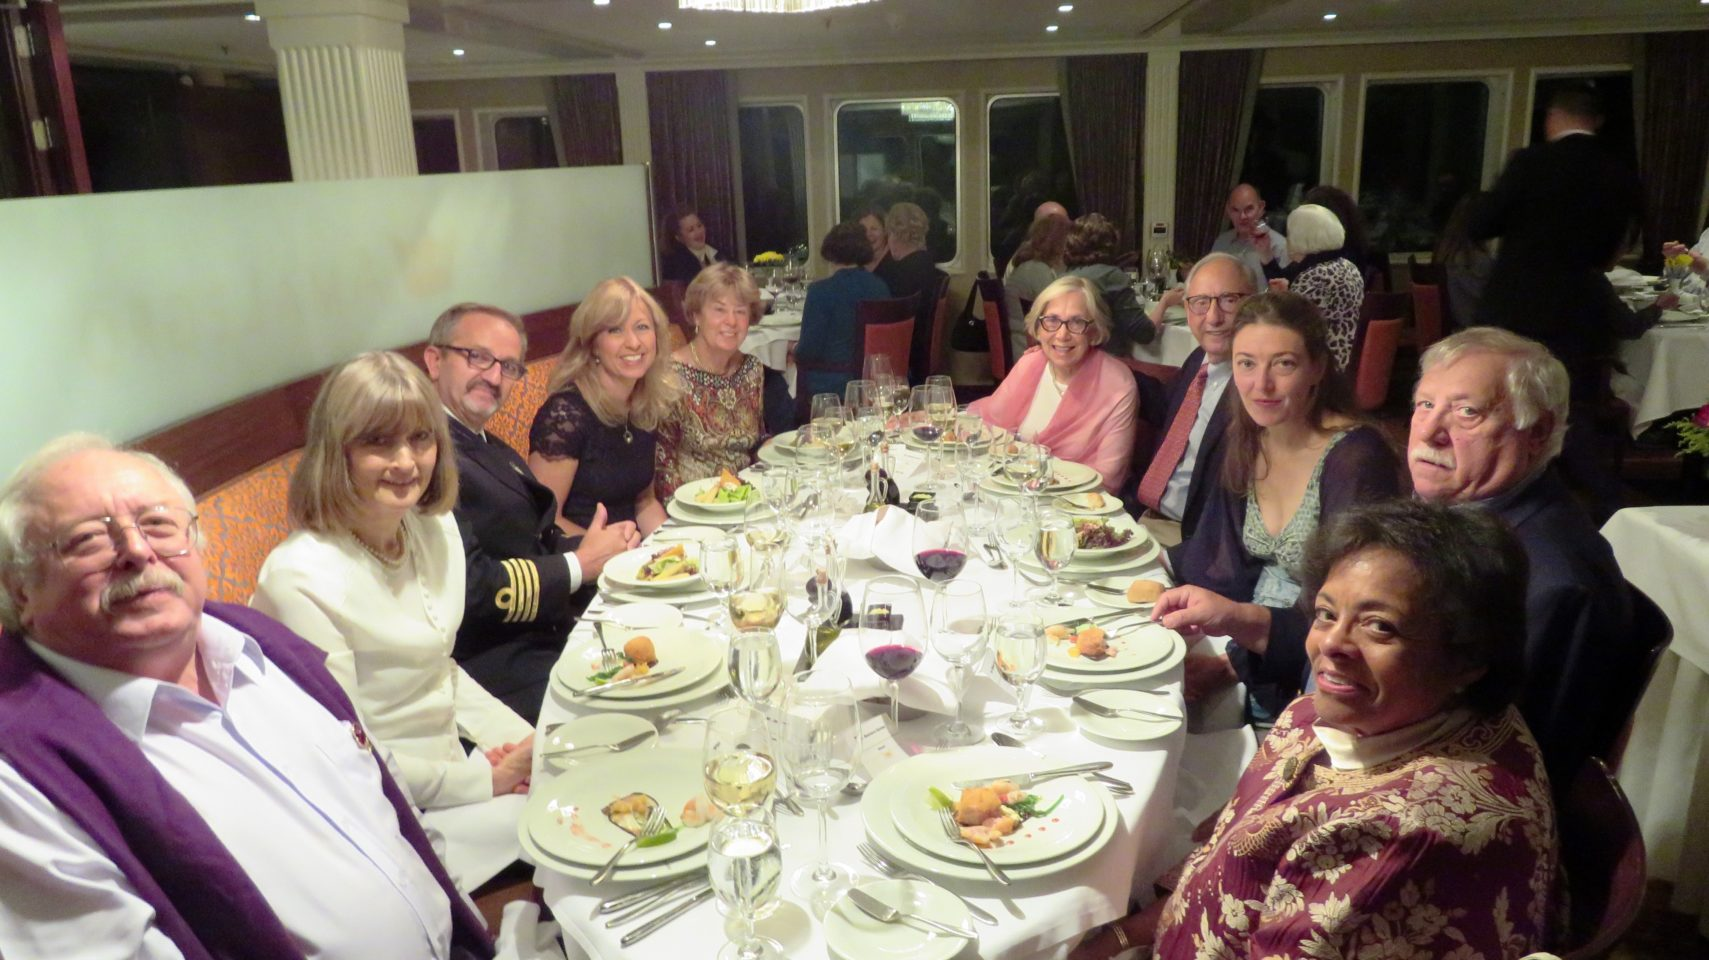 The Captain and his very special guests at the Captain's Table at dinnertime on the AMALegro (Paris and Normandie AMAWaterways Cruise)